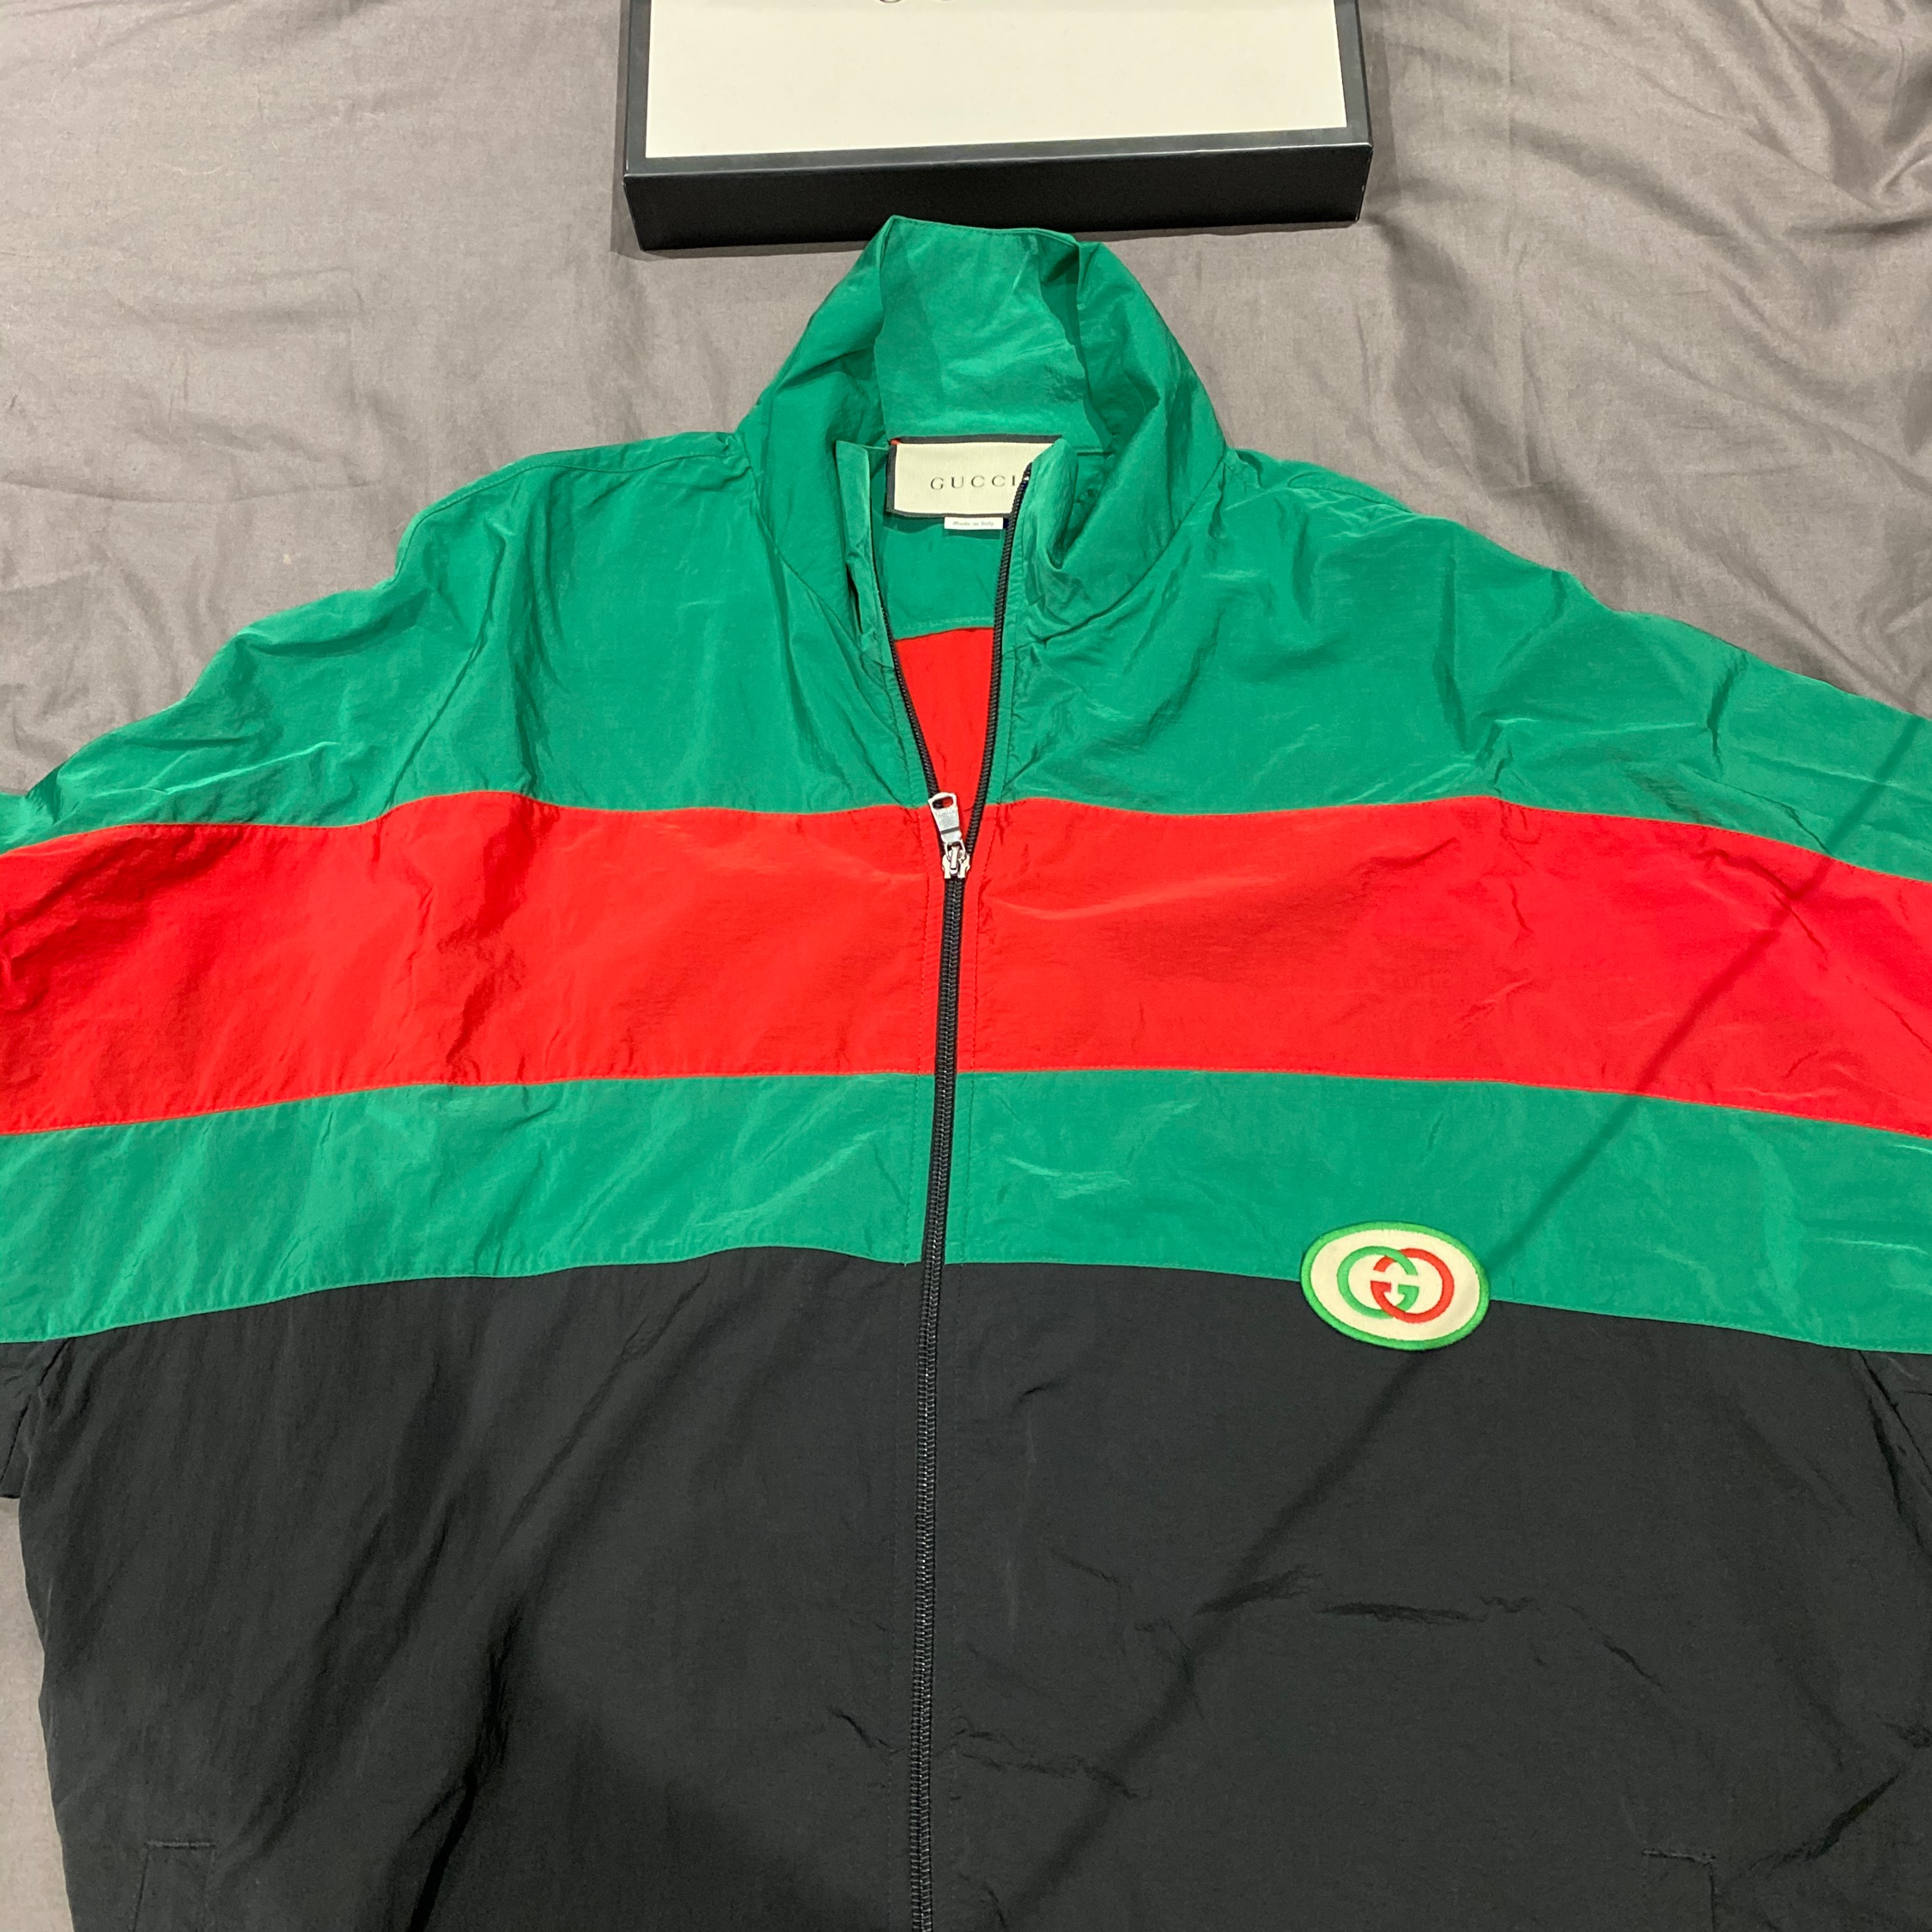 Gucci Nylon Track Jacket Collection 500Quid